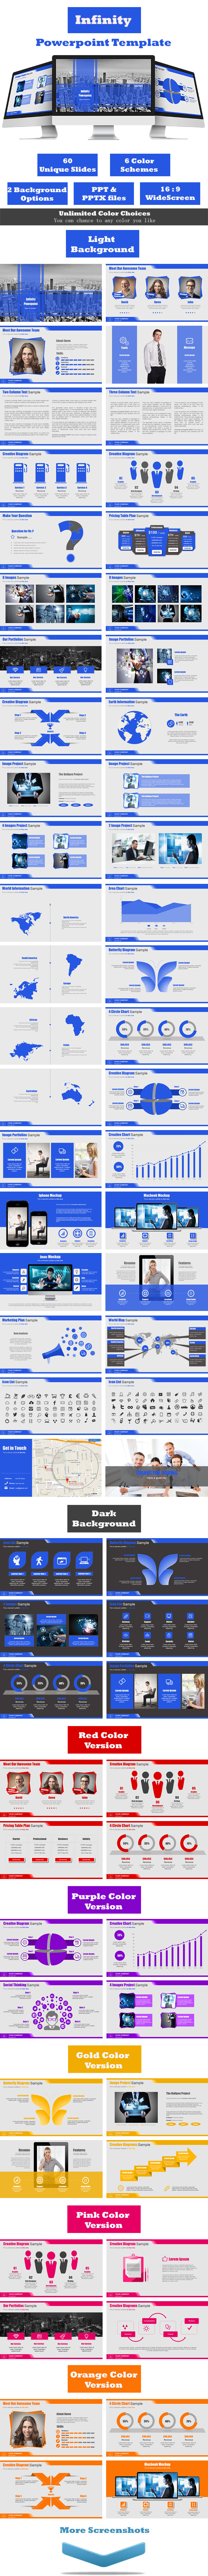 GraphicRiver Infinity Powerpoint Template 11411729